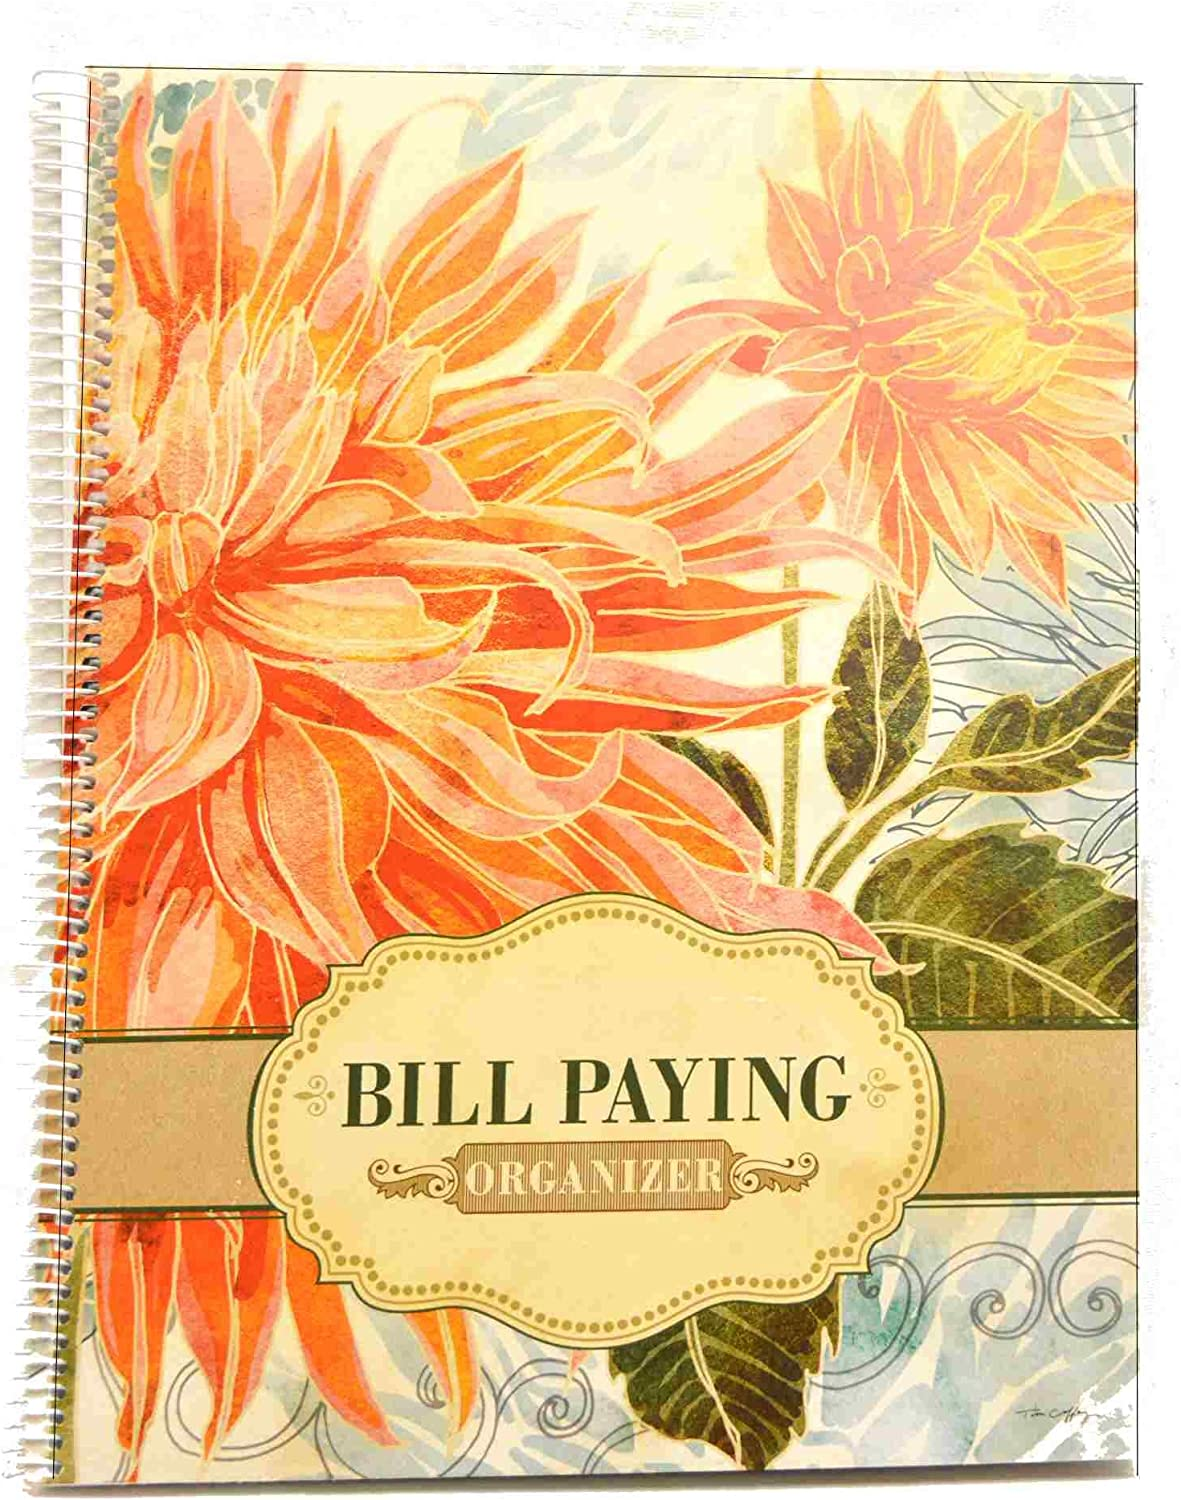 Monthly Bill Paying Organizing Organizer Budget Book with Pockets with Bonus Get-Out-of-Debt Tips - Orange Flowers